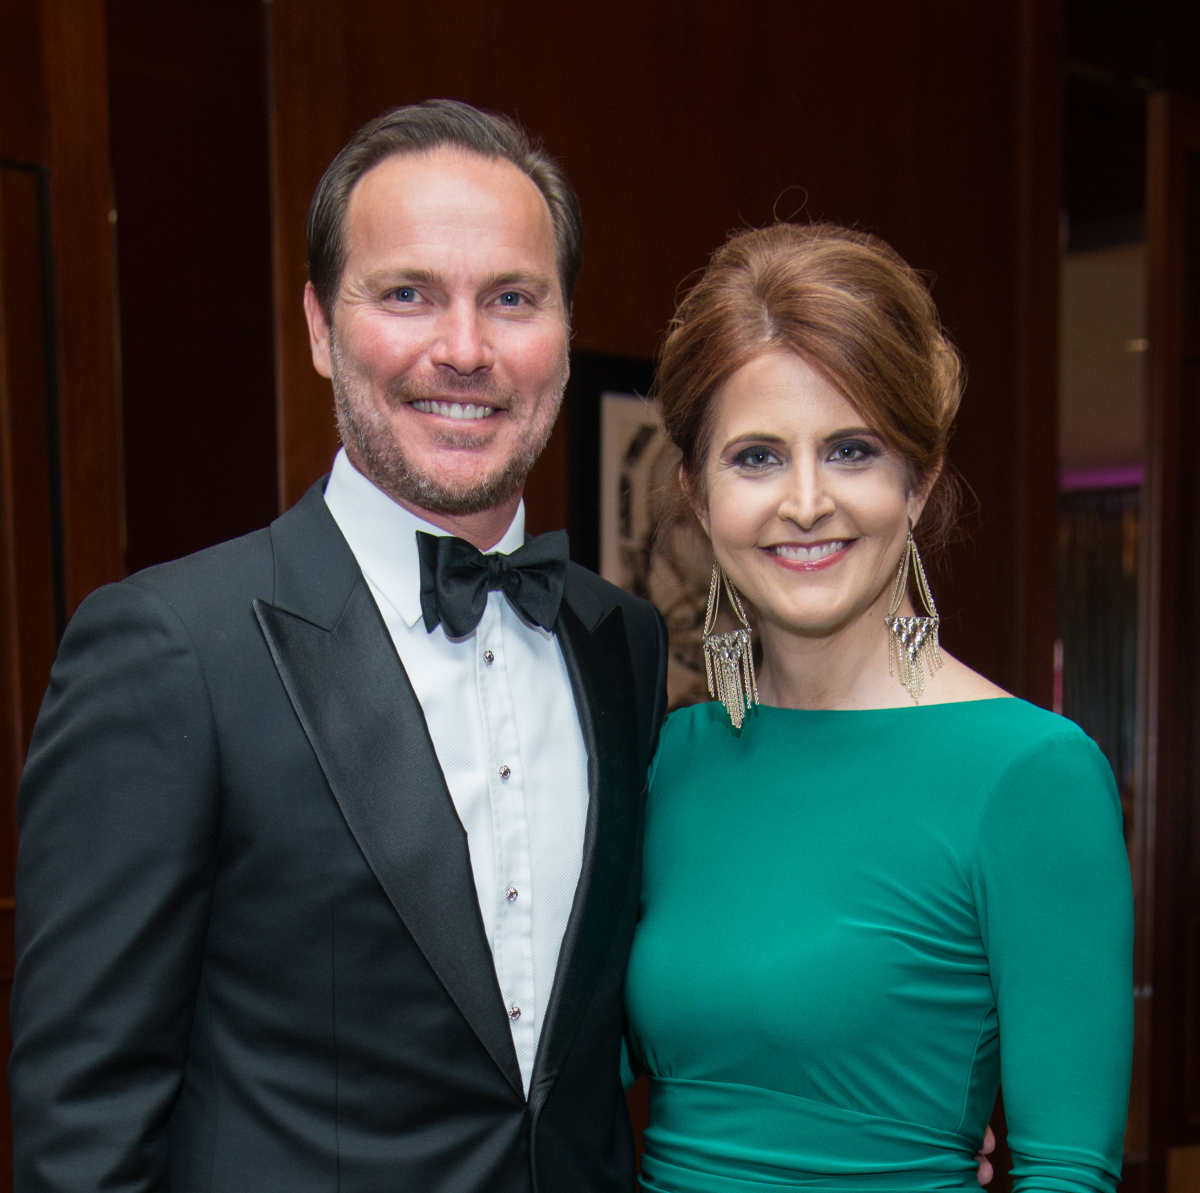 Komen Foundation 25th Gala, Feb. 2016, Jonathan Brinsden, Carrie Brinsden